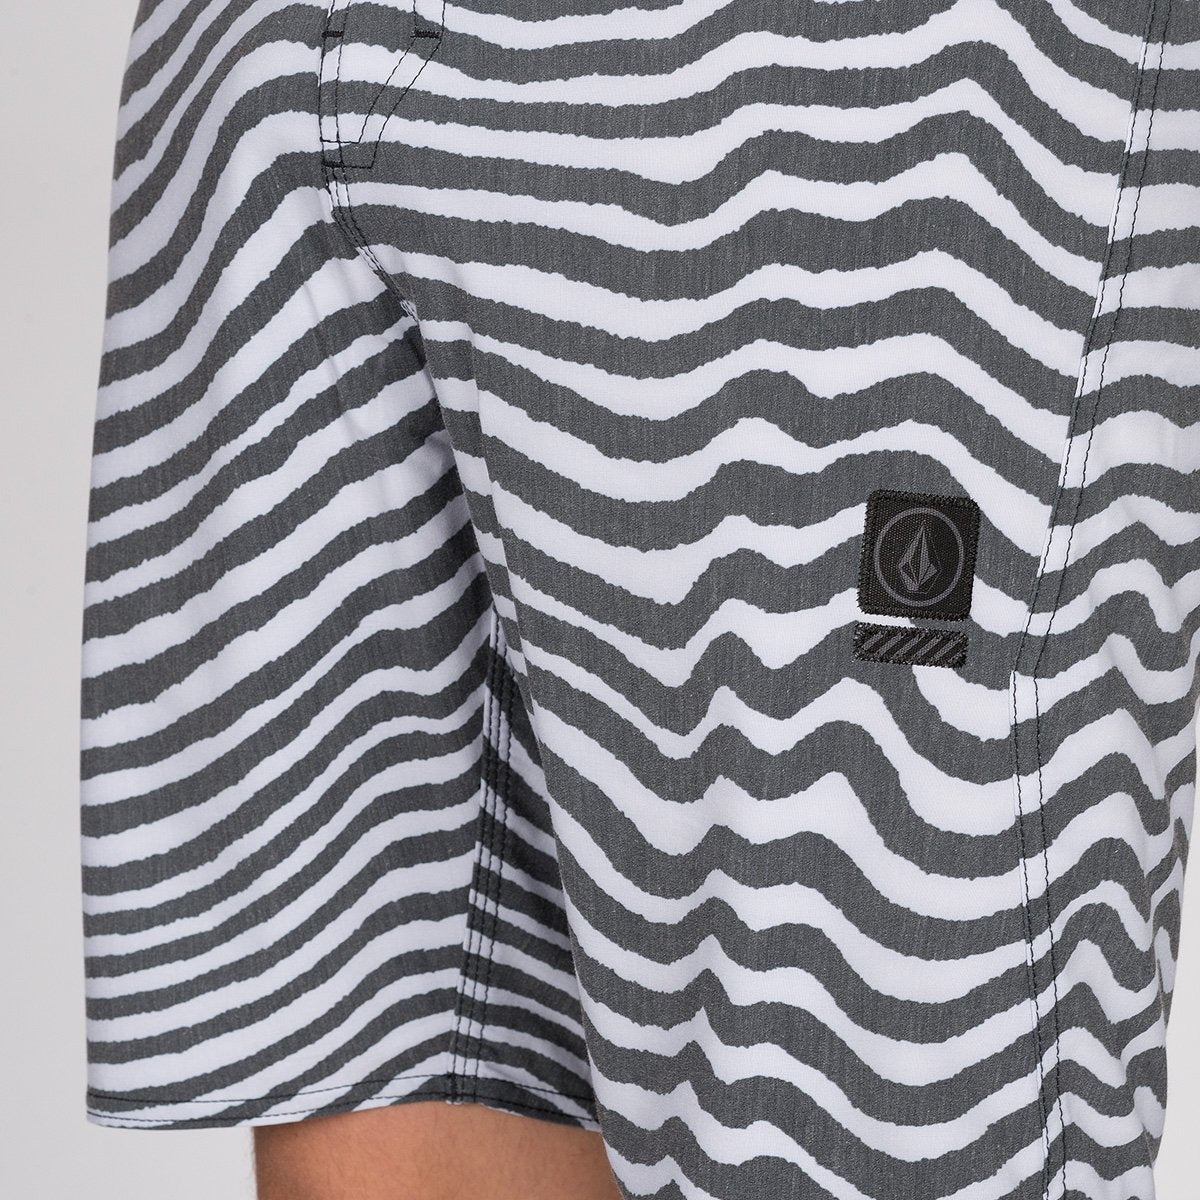 Volcom Mag Vibes Stoney 19 Boardshort Black/White - Clothing